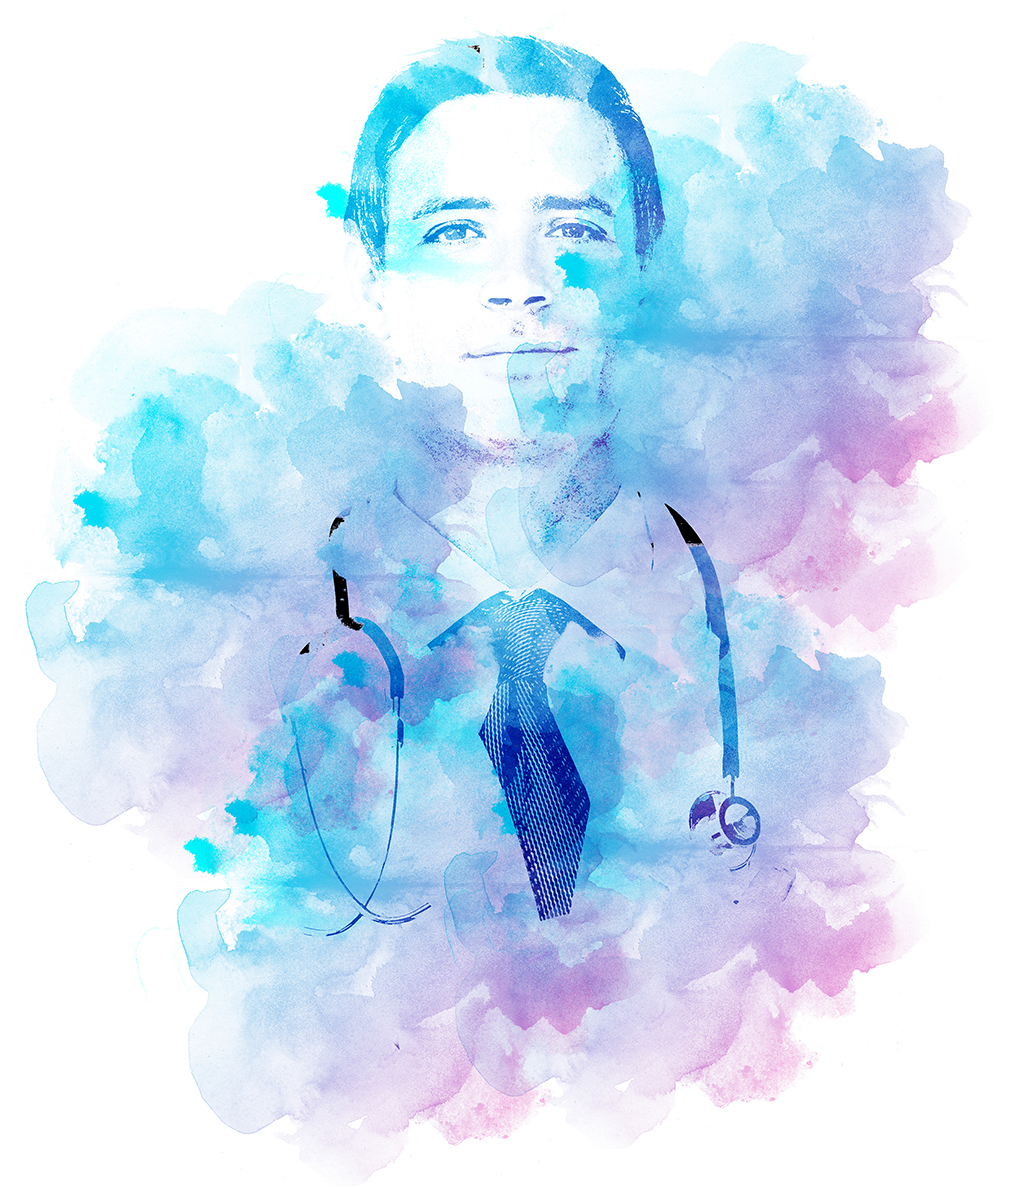 DoctorWaterColor